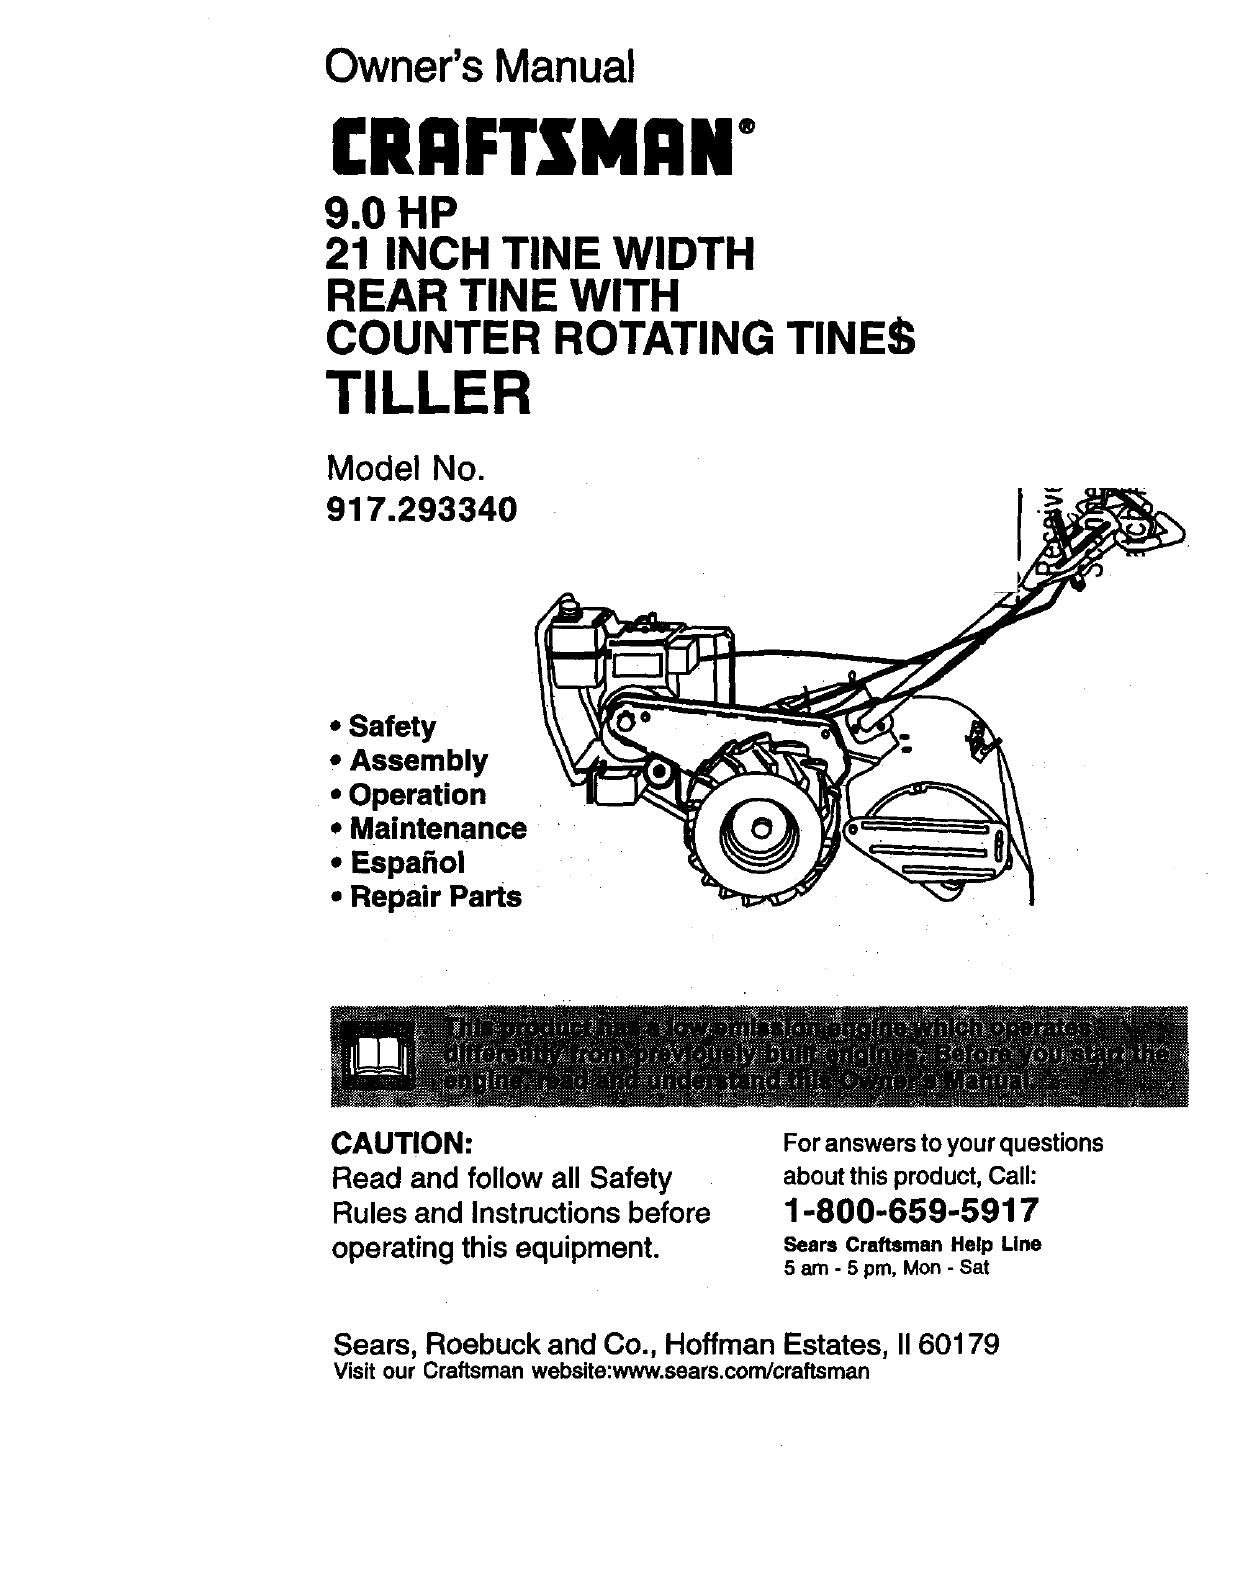 Craftsman 917293340 User Manual 9.0HP REAR TINE TILLER